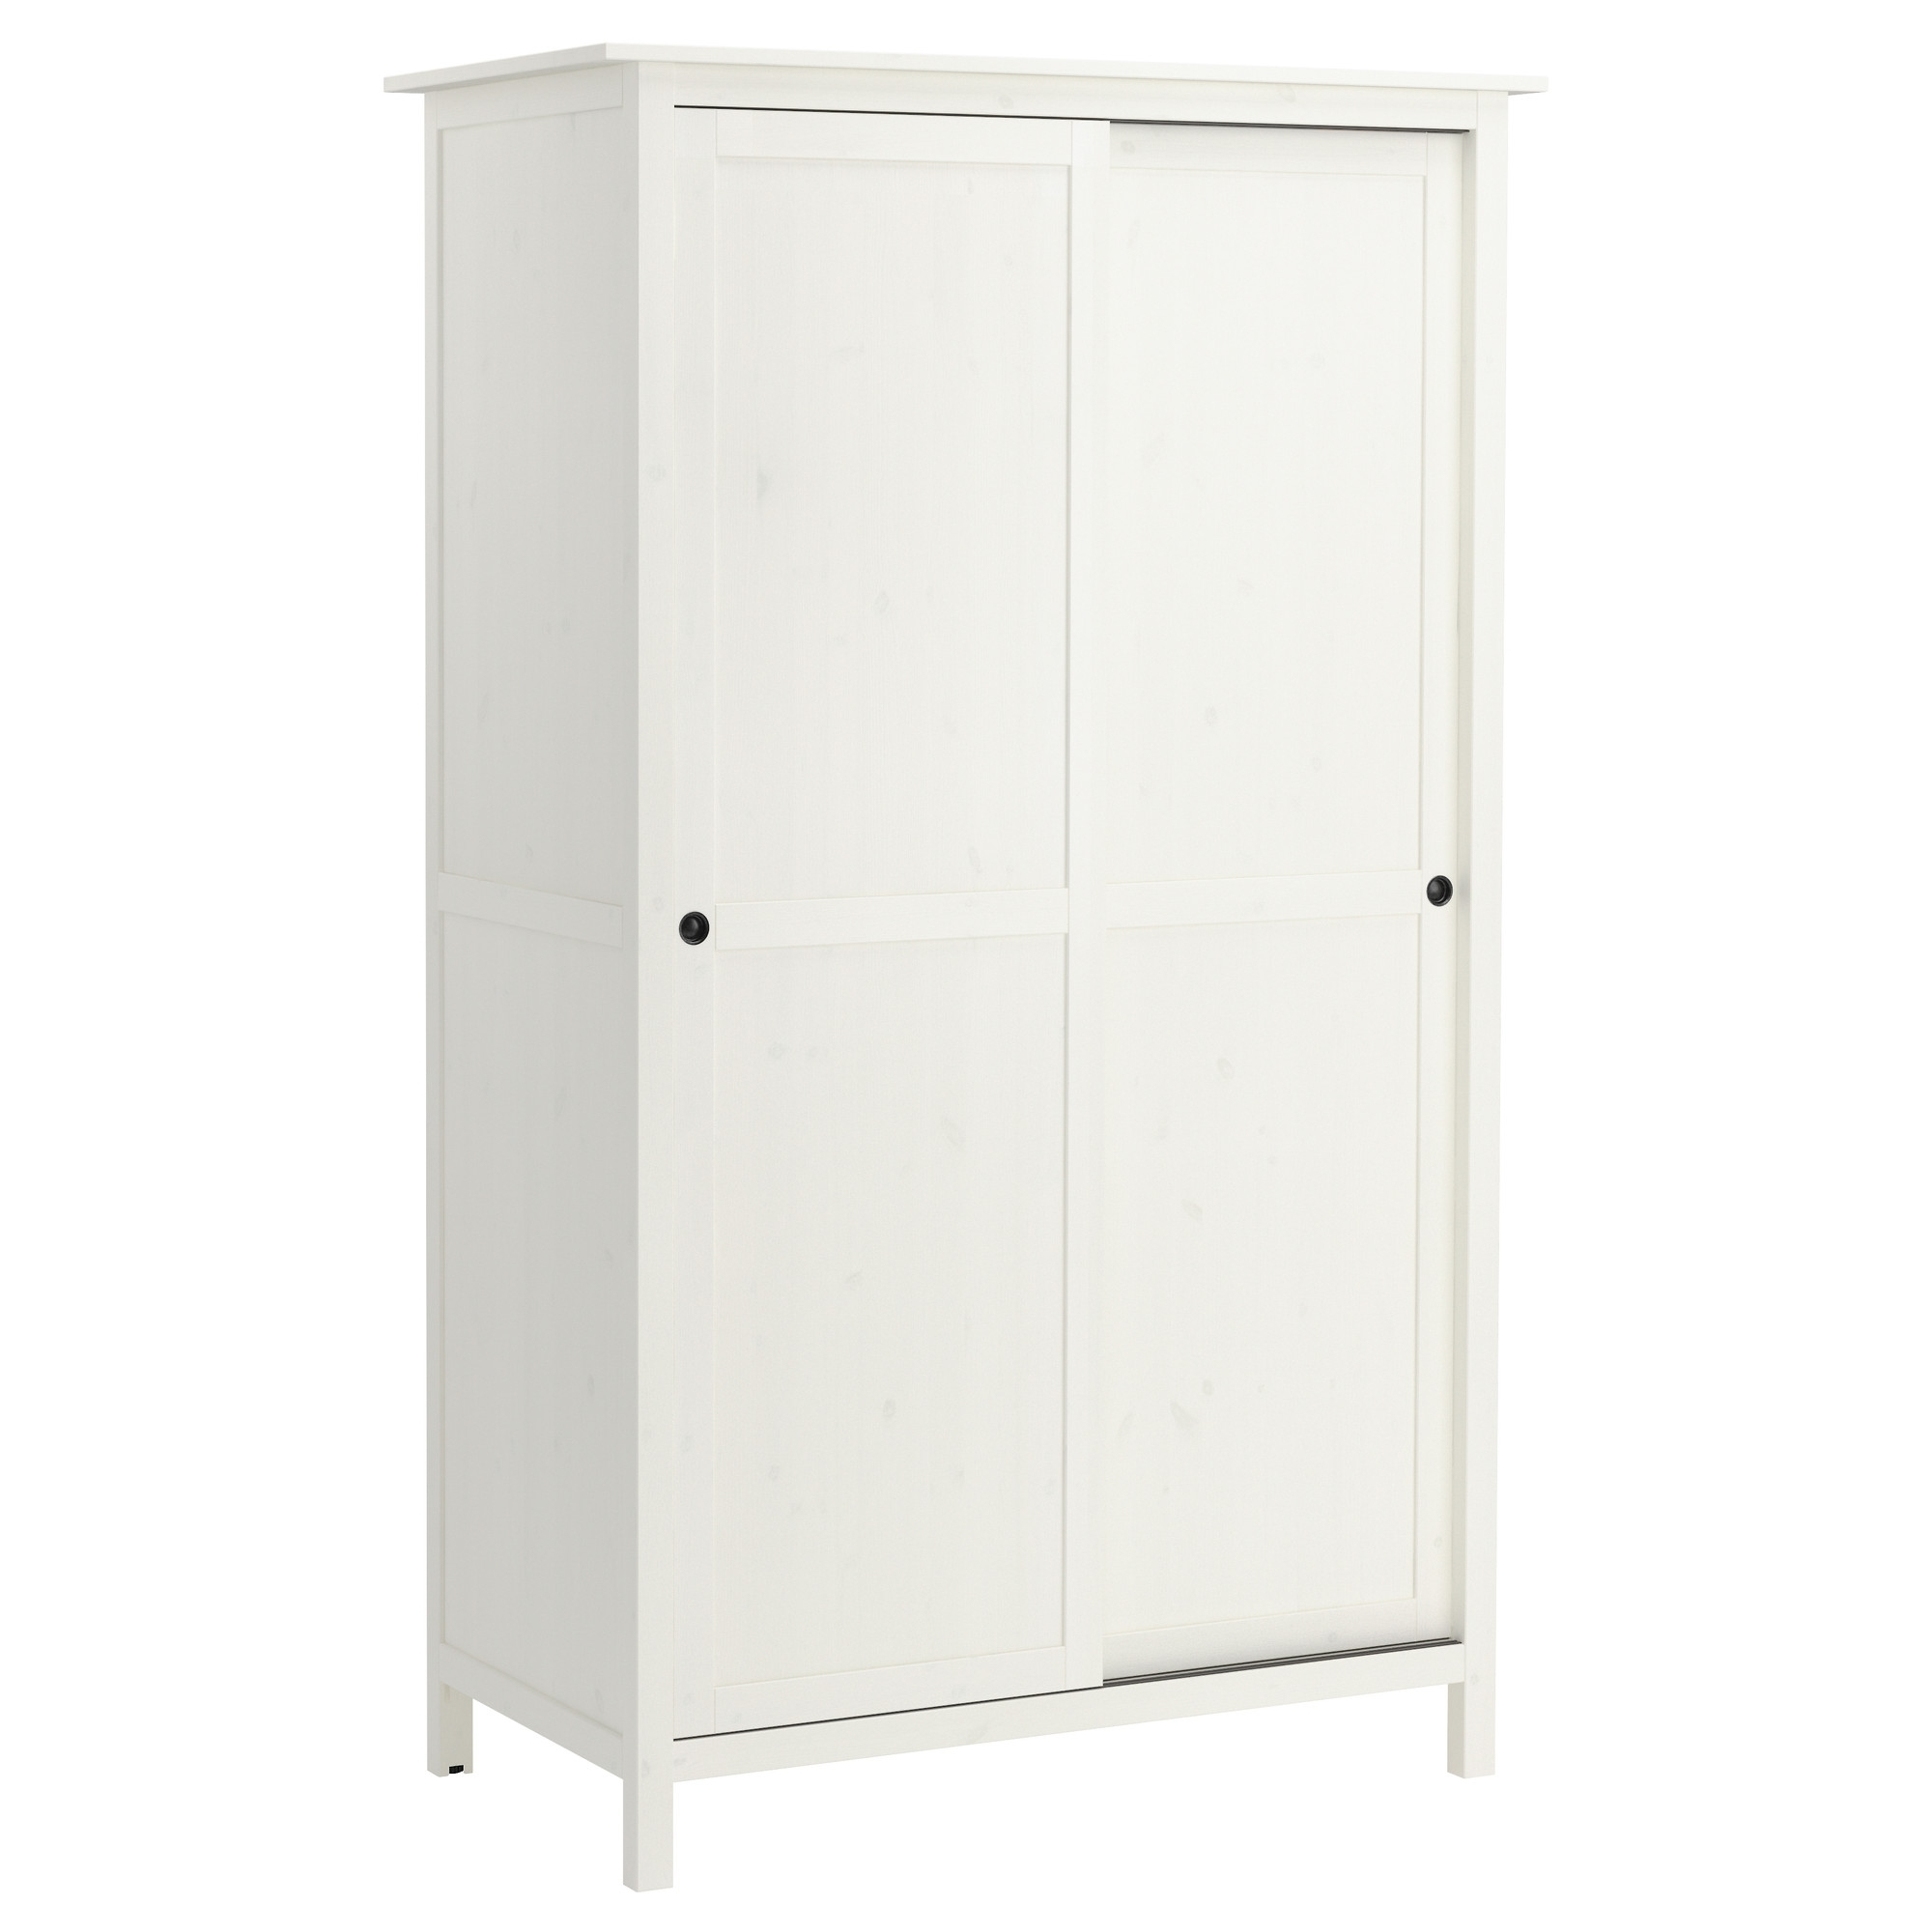 2017 Hemnes Wardrobe With 2 Sliding Doors White Stain 120x197 Cm – Ikea With Regard To White Wooden Wardrobes (View 12 of 15)